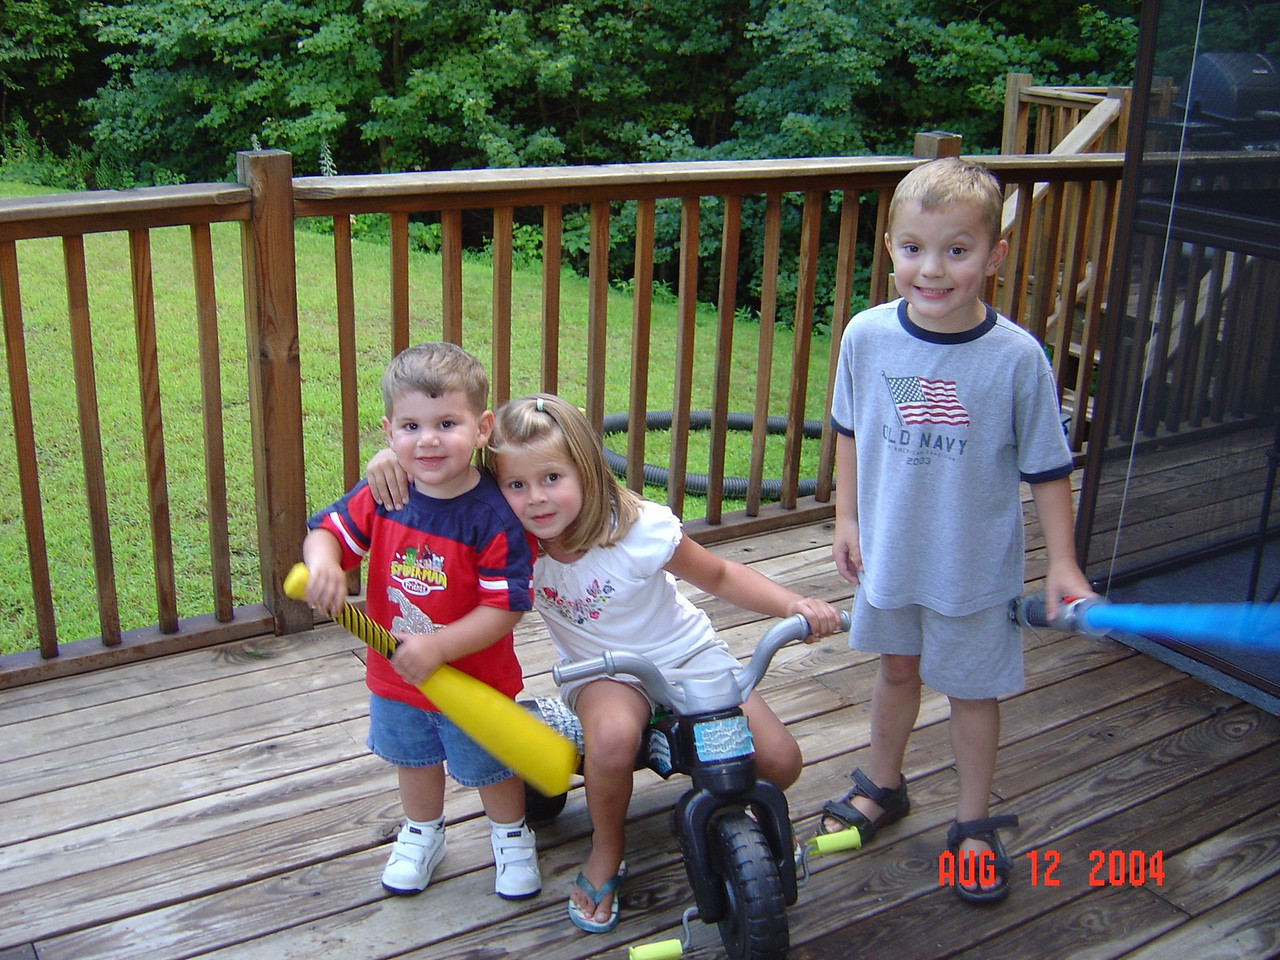 Justin_Natalie_and_Tyler-08-12-04